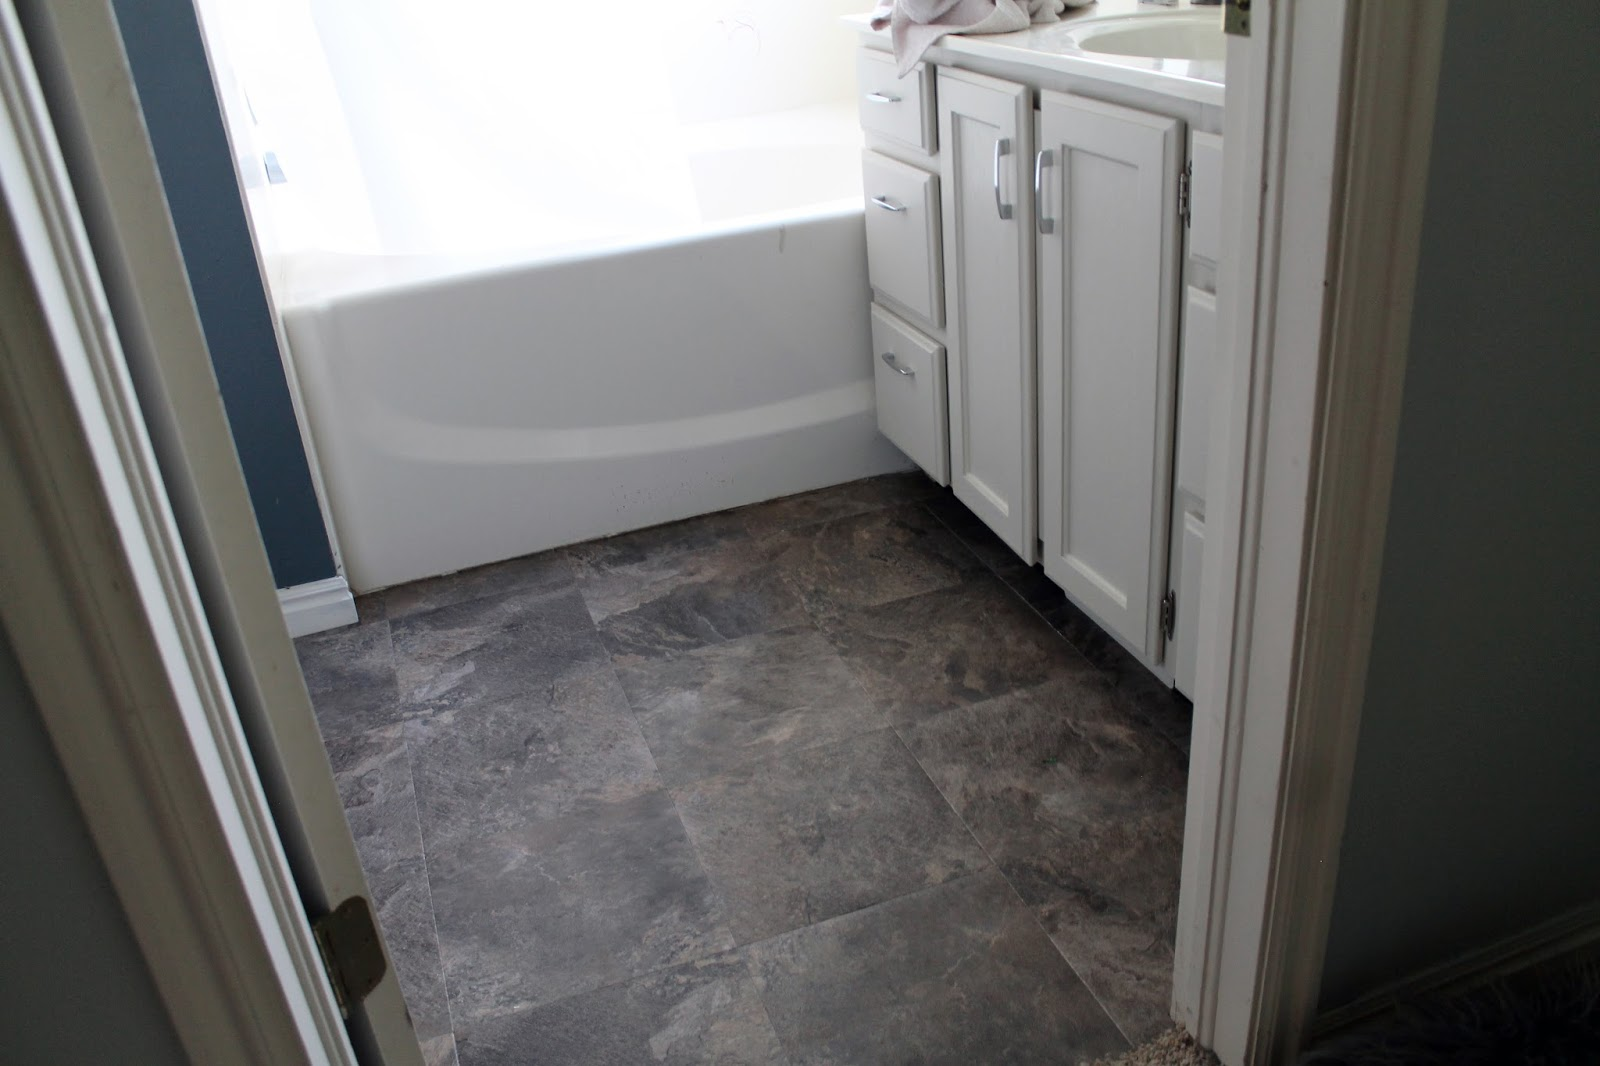 Bathroom floor vinyl tiles - You Could Grout The Tiles To Make Them Look Even More Real But We Were Happy Just Laying Them On The Existing Floor Right Next To Each Other